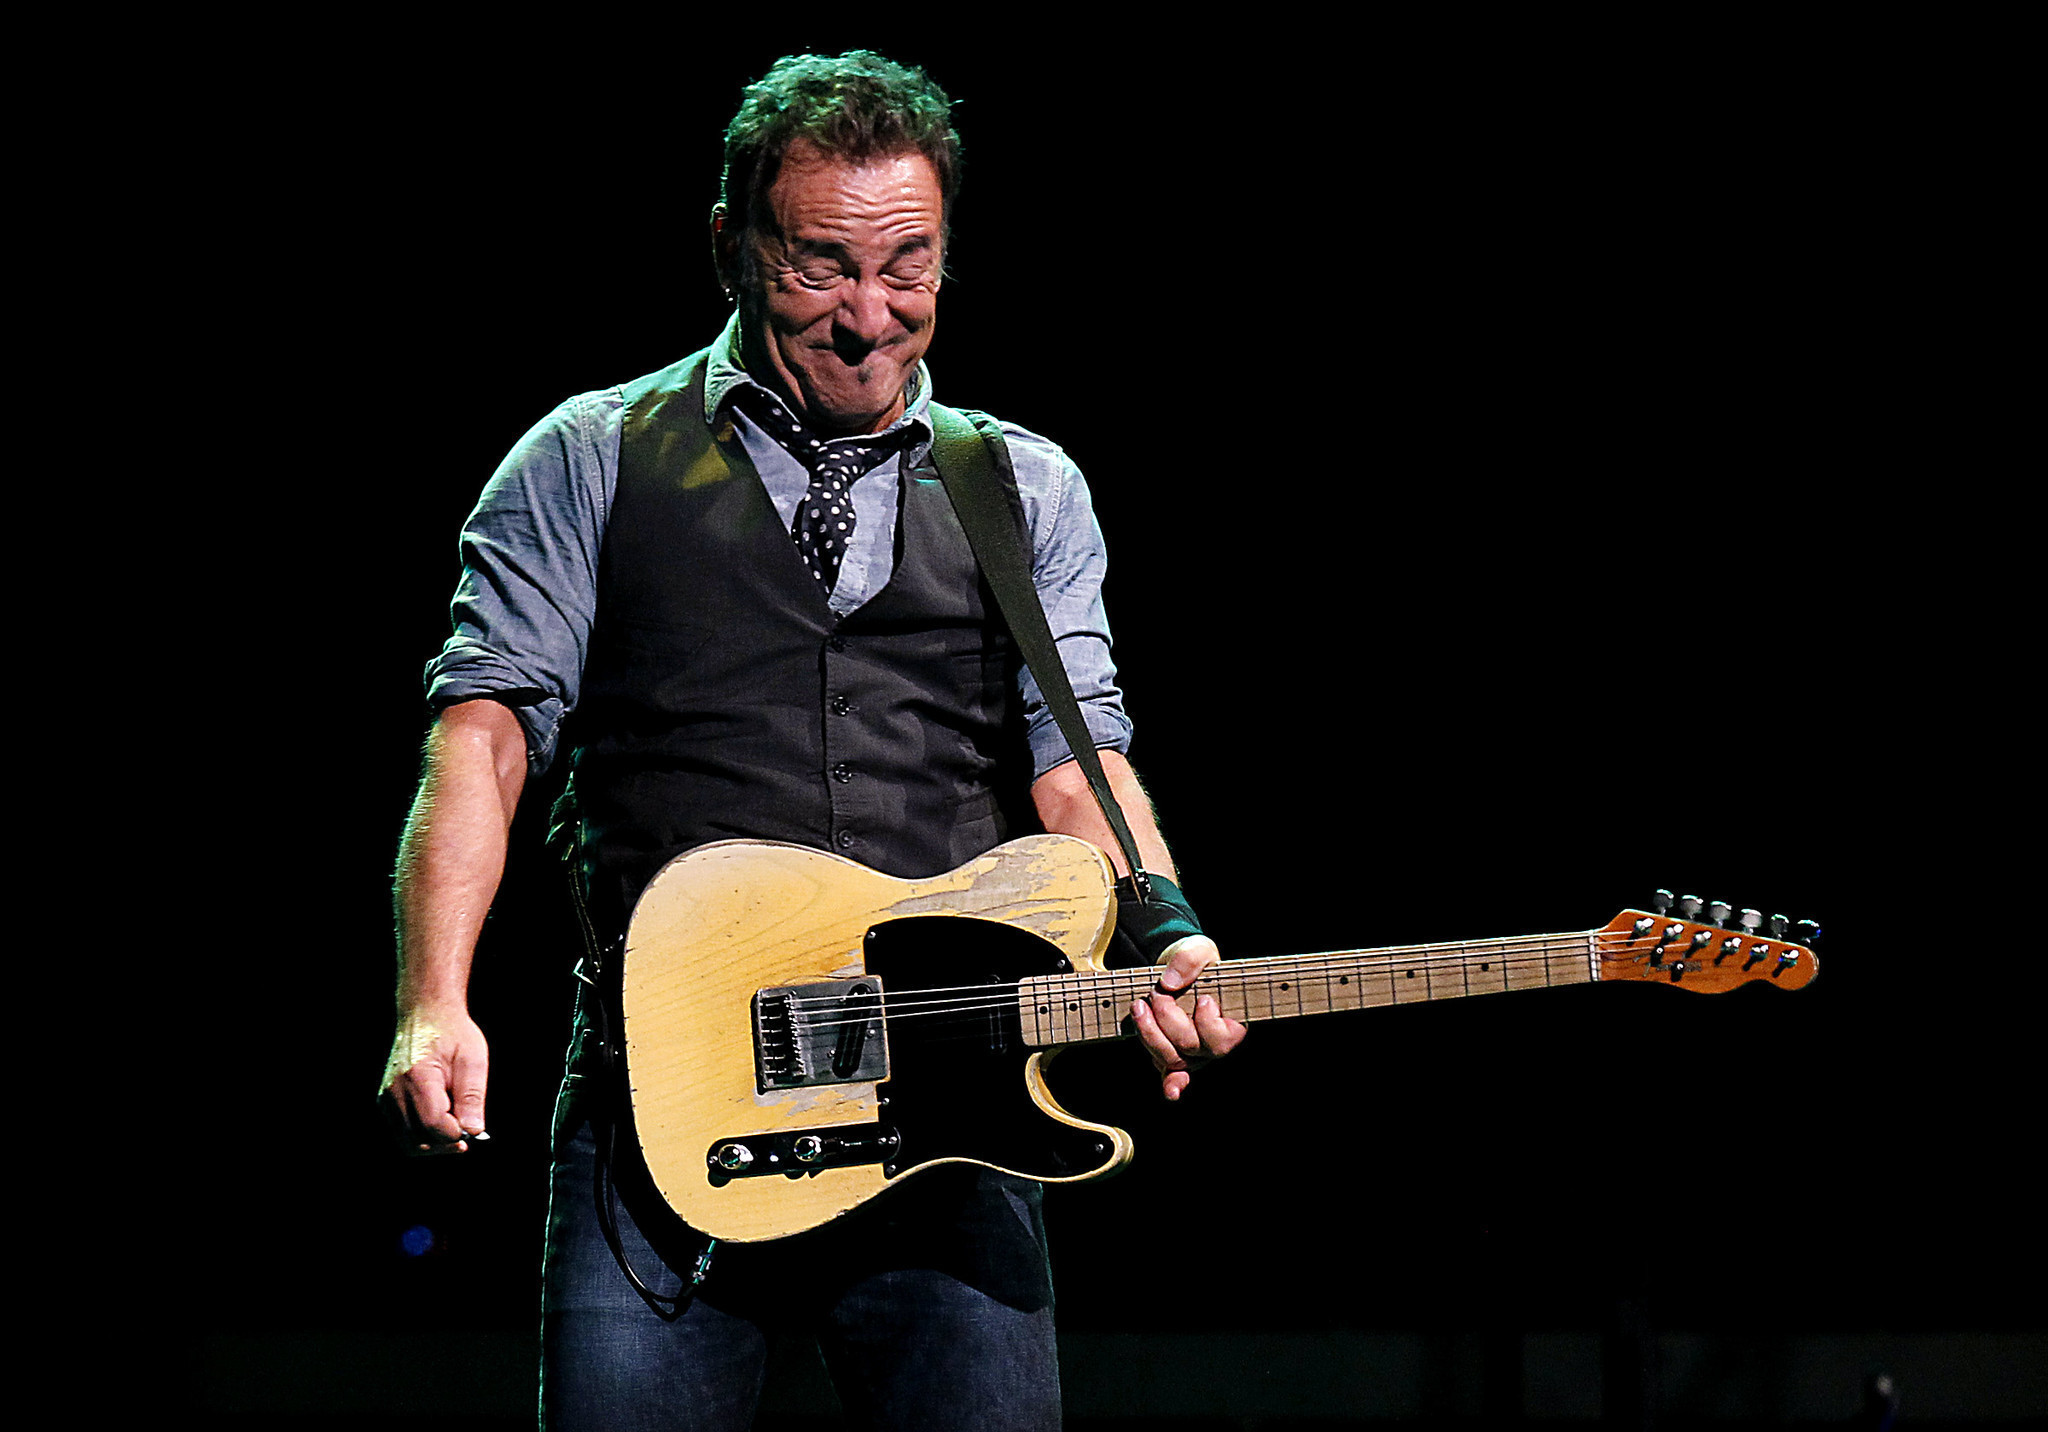 Bruce Springsteen Tour Virginia Beach